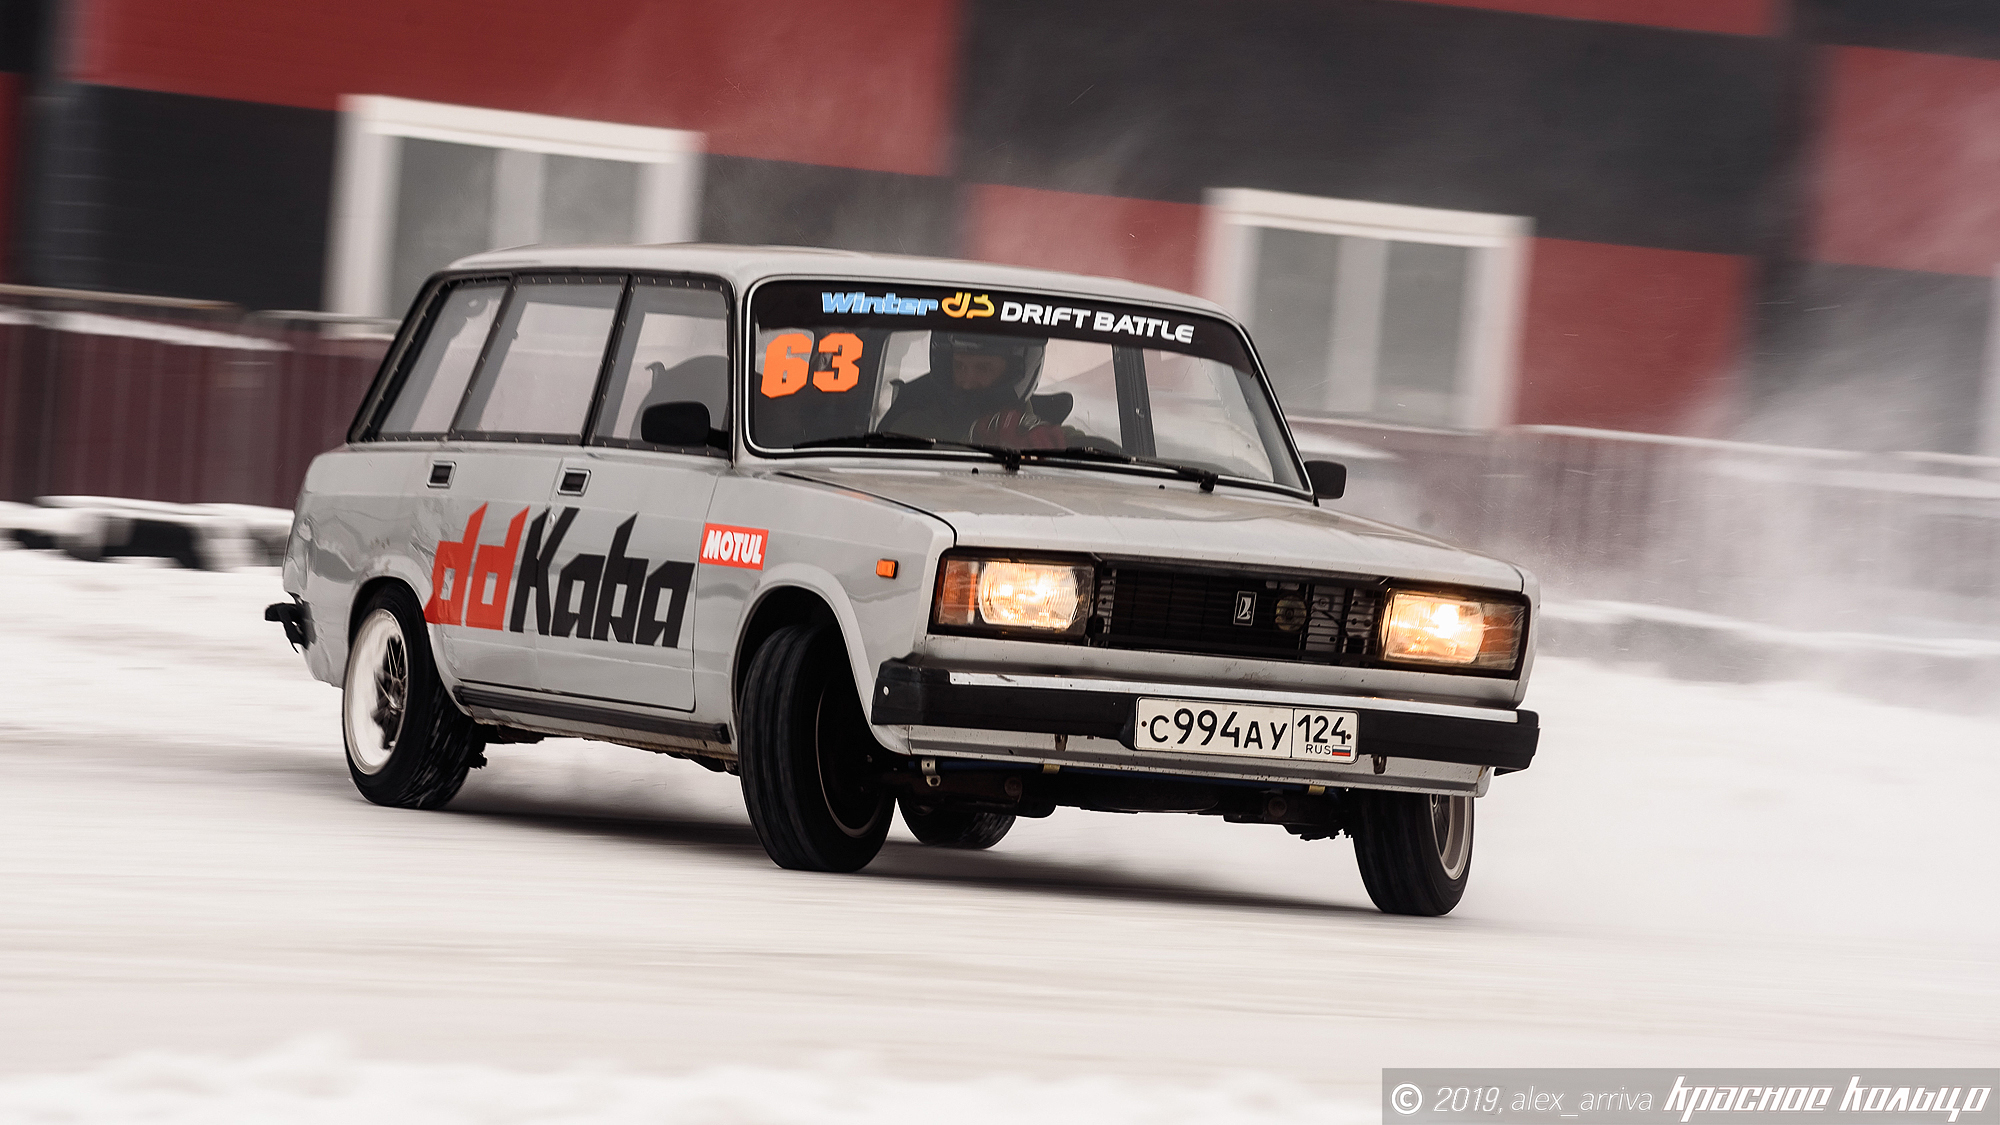 Tell us about your car and how was it to drift it around in the ice and snow.